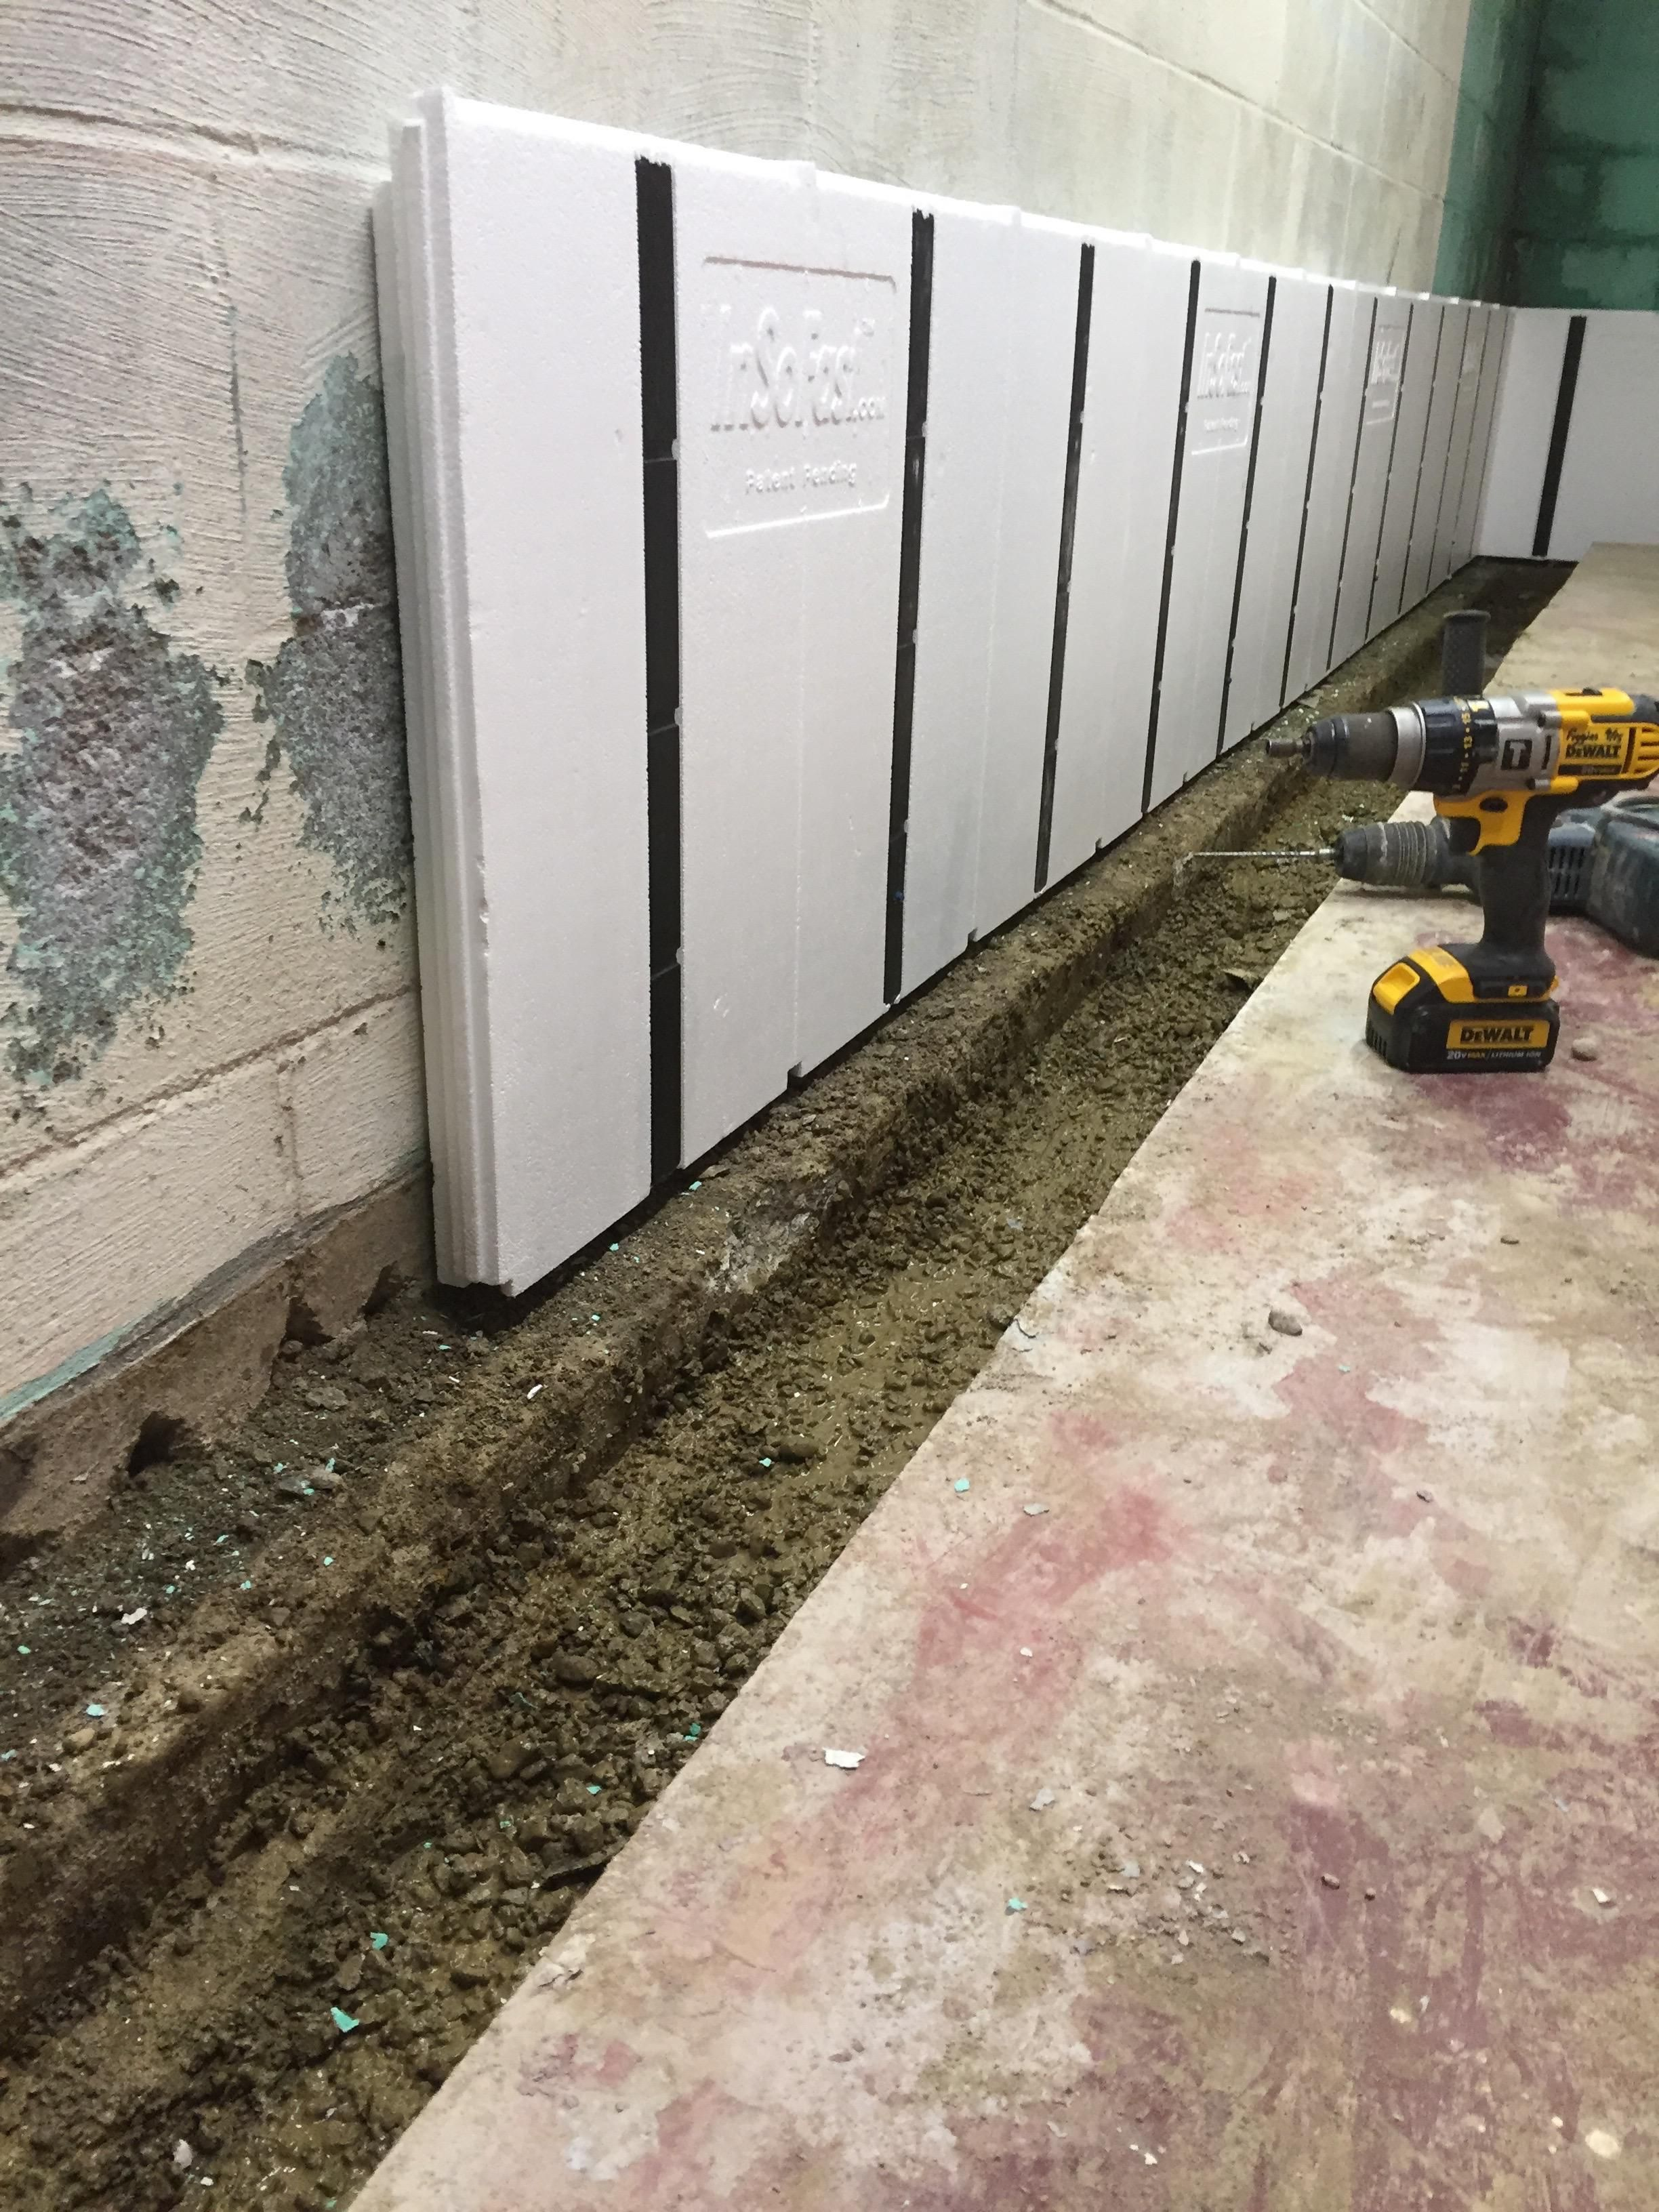 Can I Integrate Insofast Panels Into A Perimeter Drainage System In My Basement Absolutely